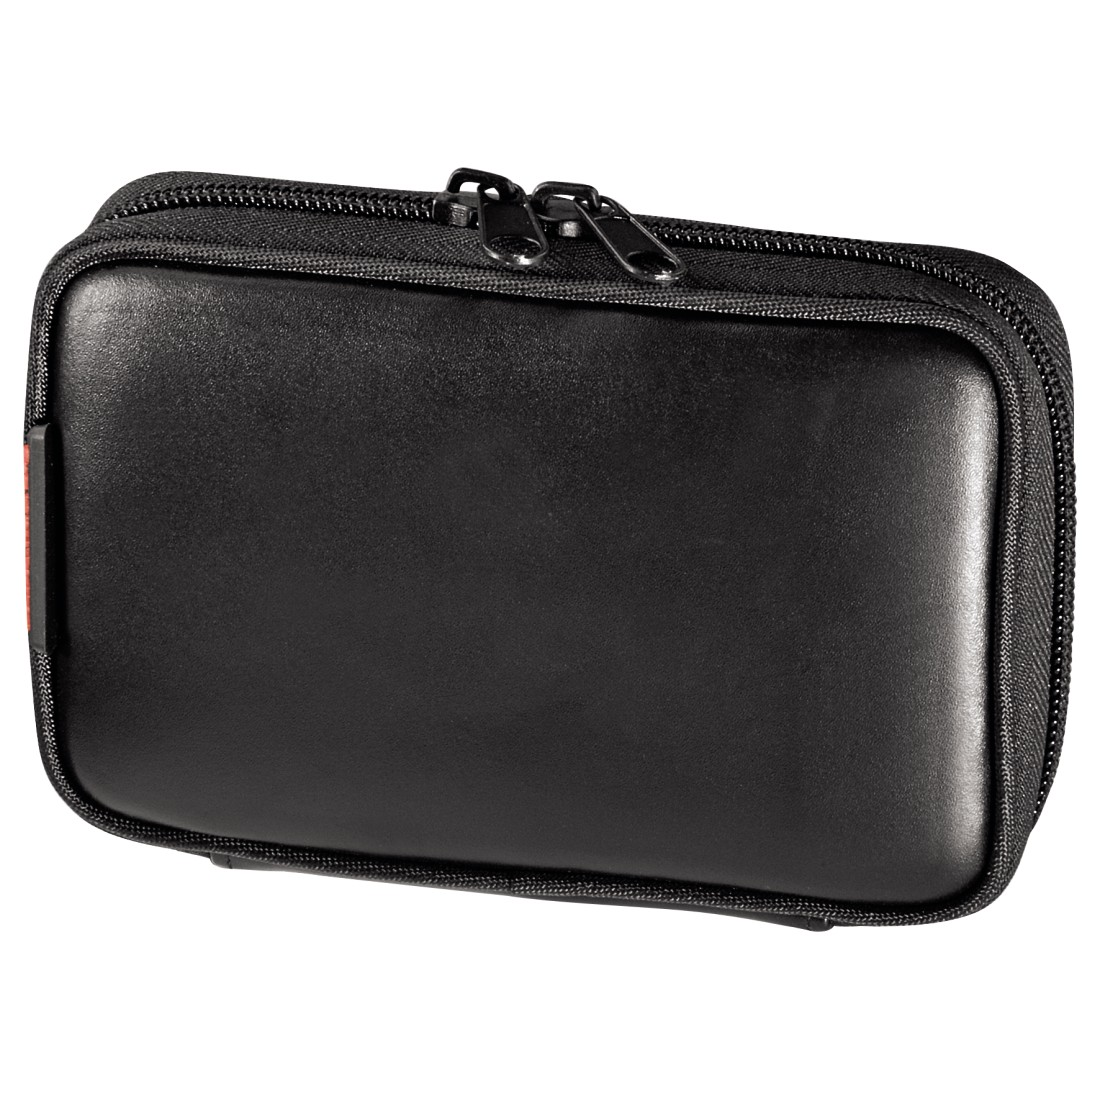 abx High-Res Image - Hama, NaviBag universal, S2, leather, black